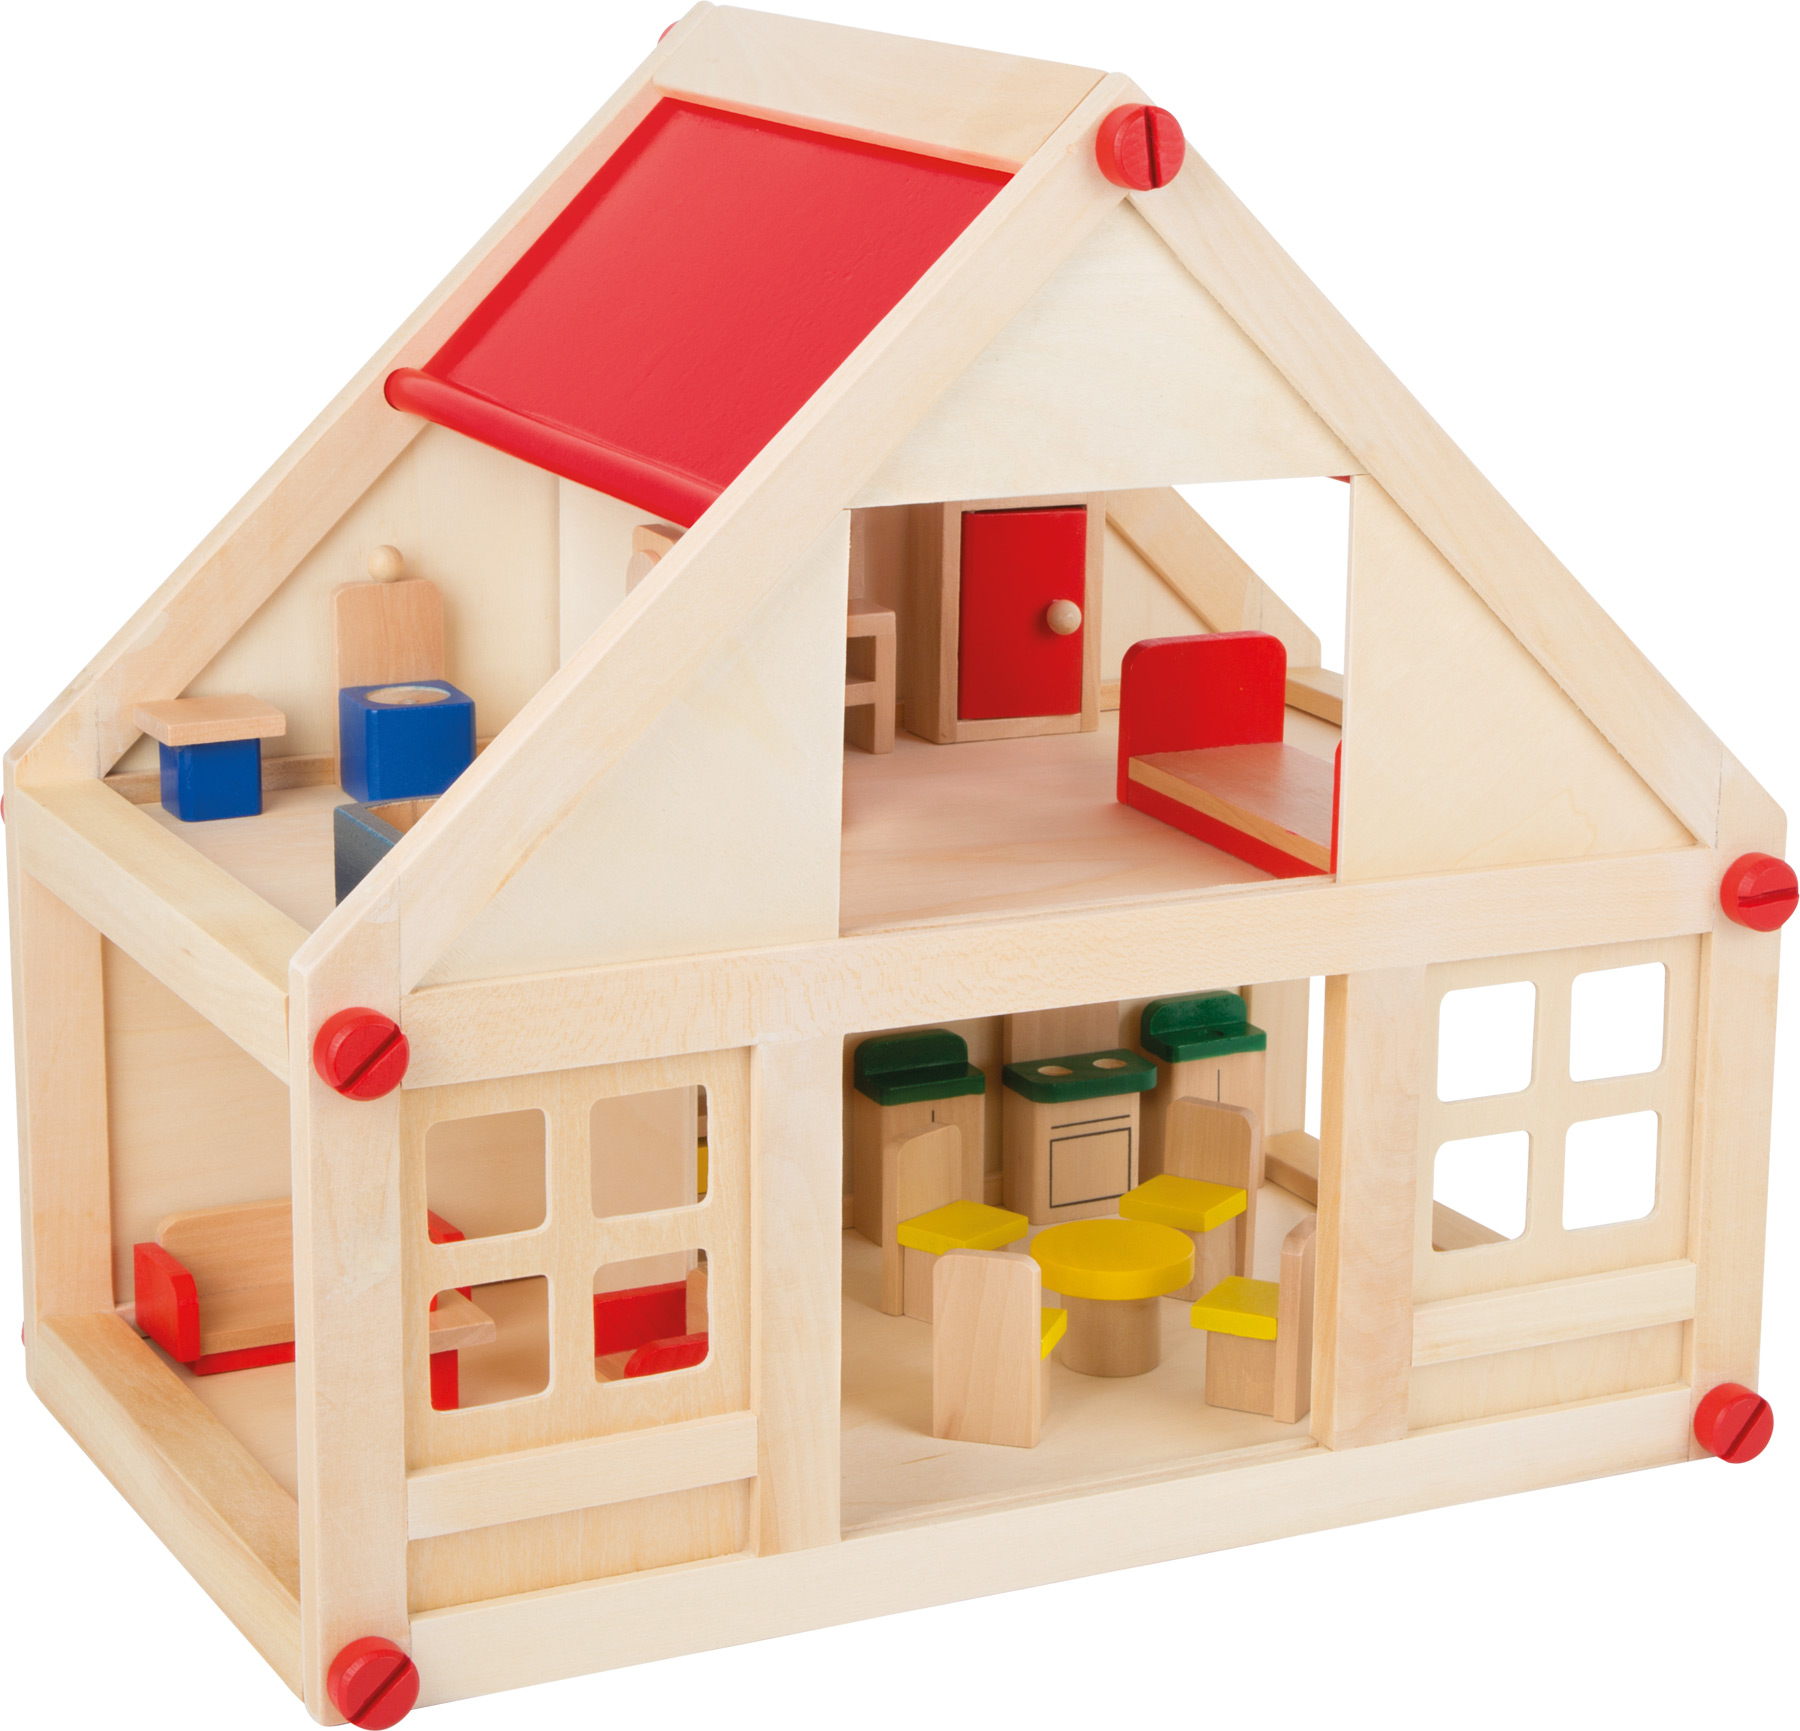 Dolls Houses From Wooden Toys Specialists From Germany